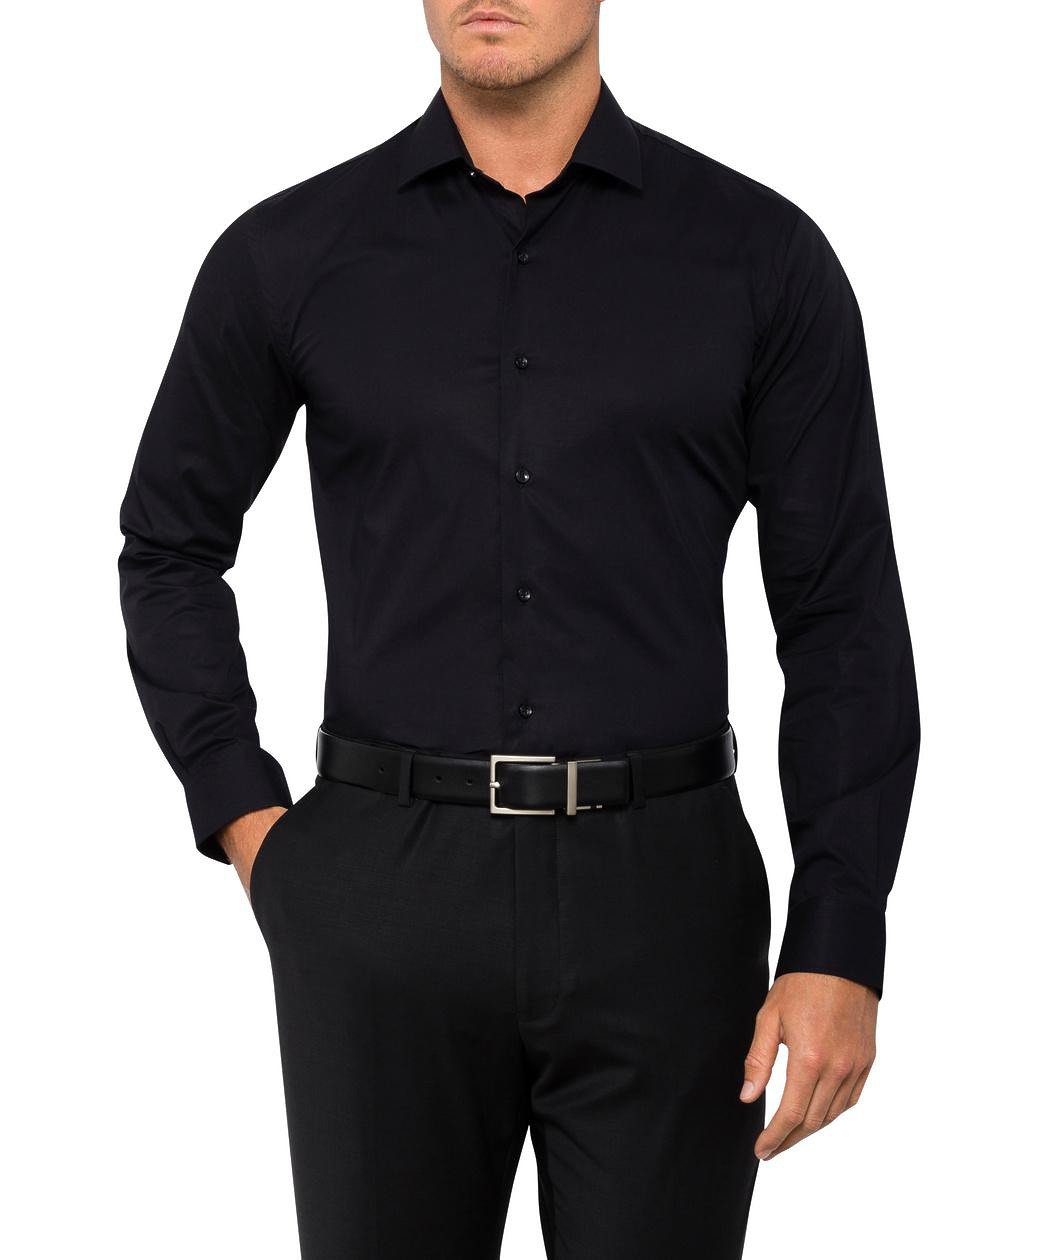 Van Heusen Slim Fit Cotton Stretch Shirt | Mens Long Sleeve Shirt ...